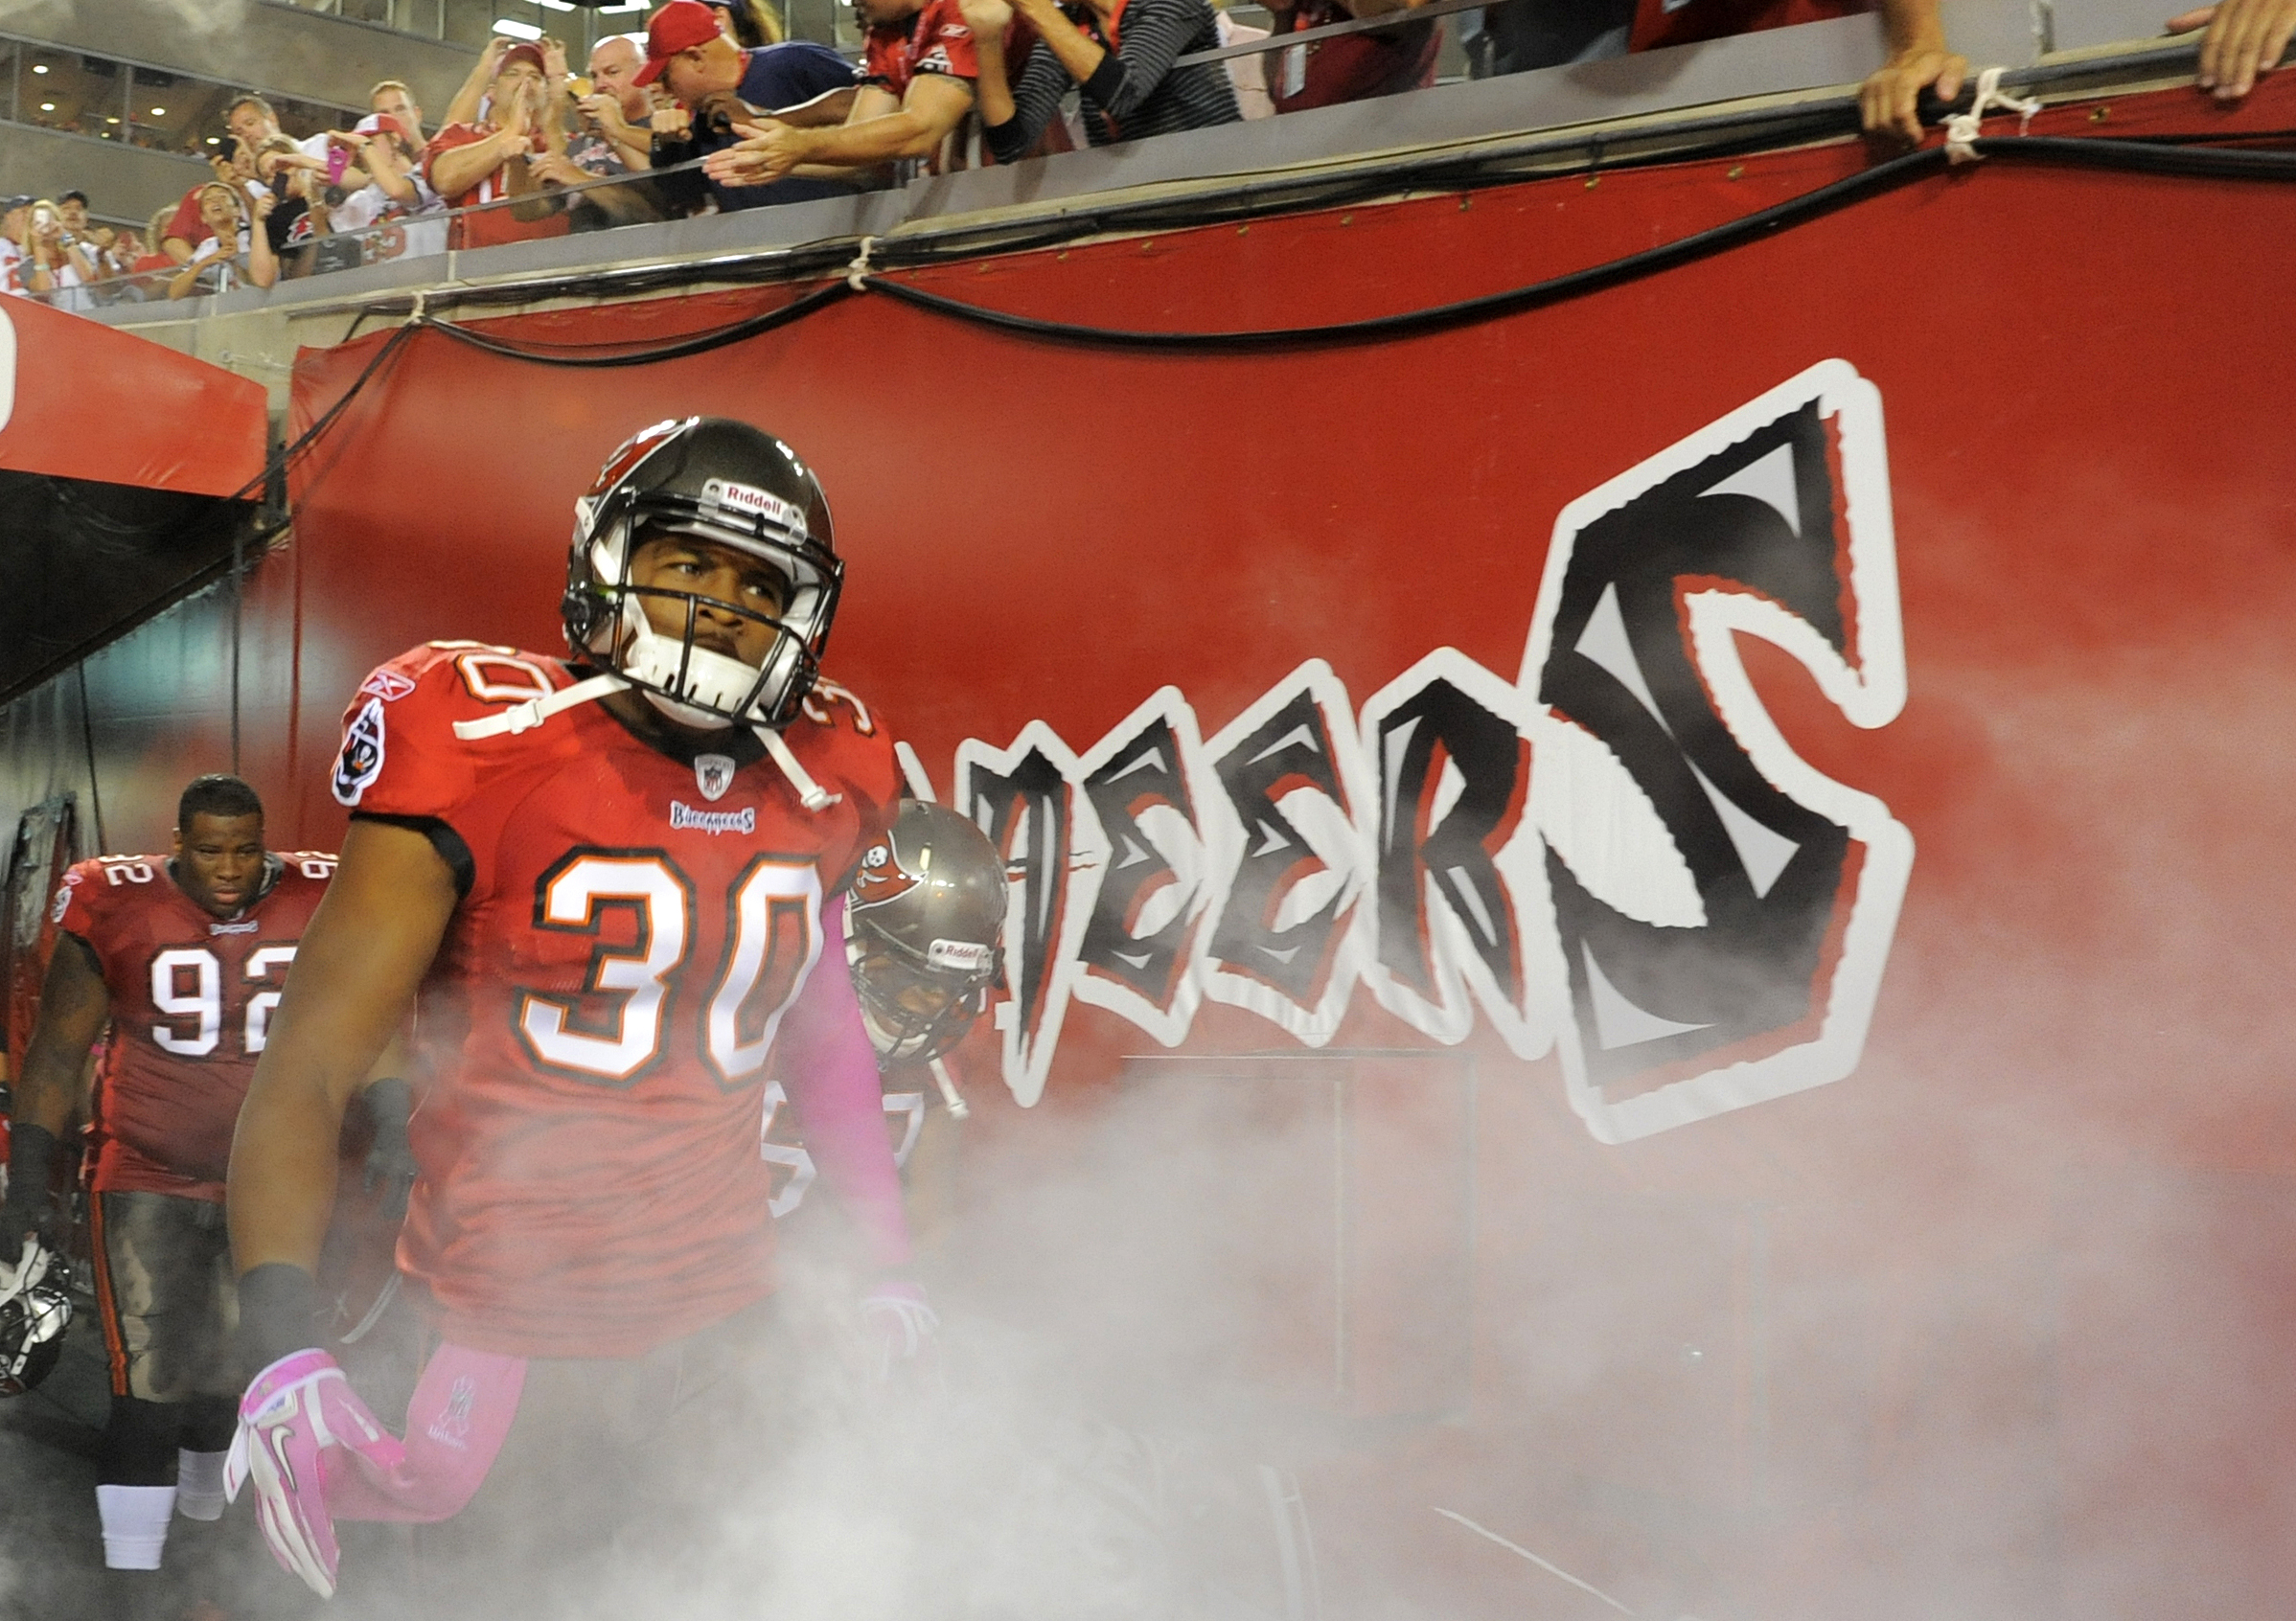 Devin Holland, ex-Buccaneers NFL player, charged with murder